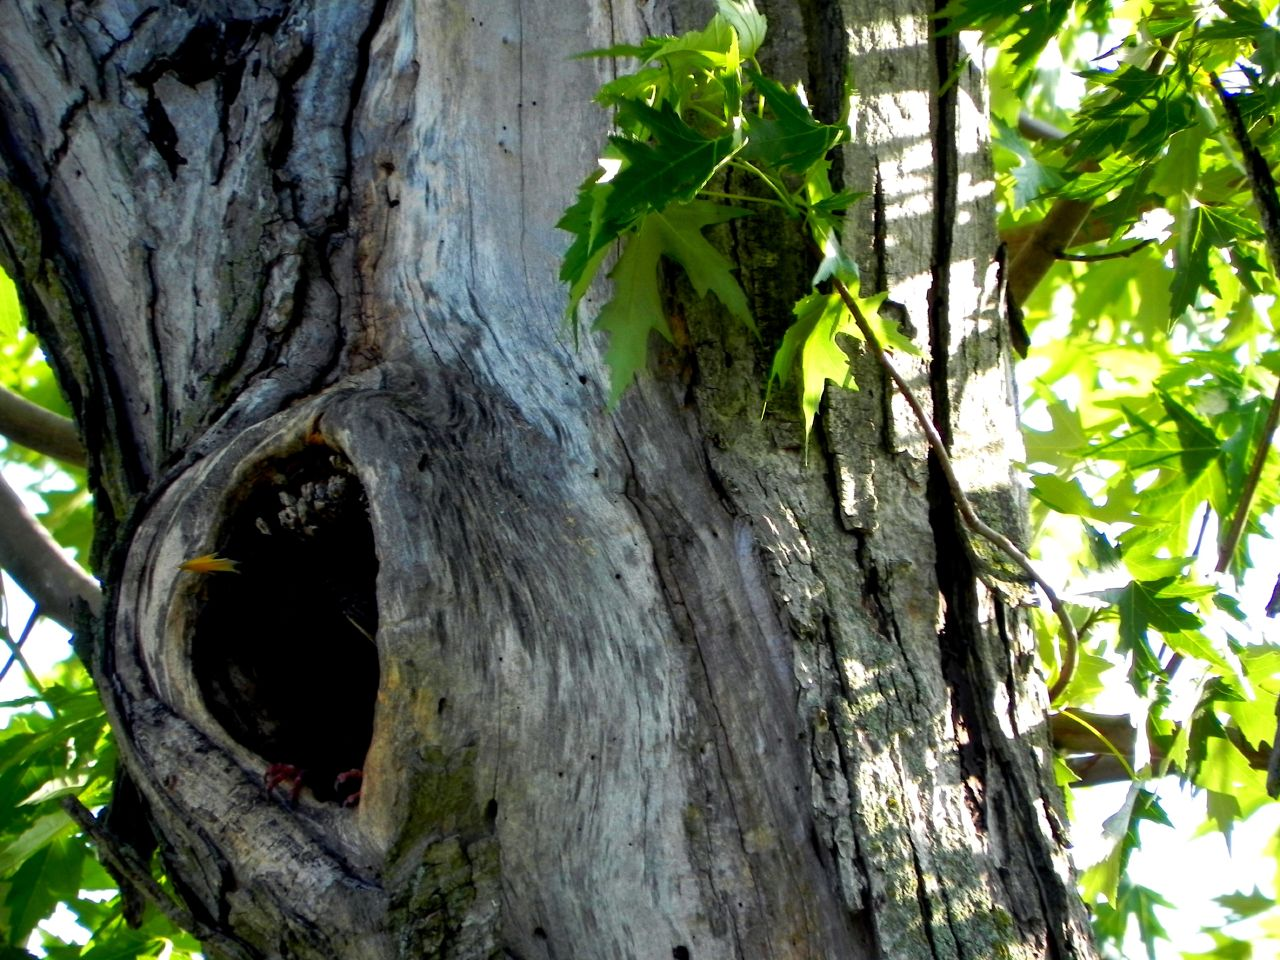 05-22-2010_Bird in Tree cavity